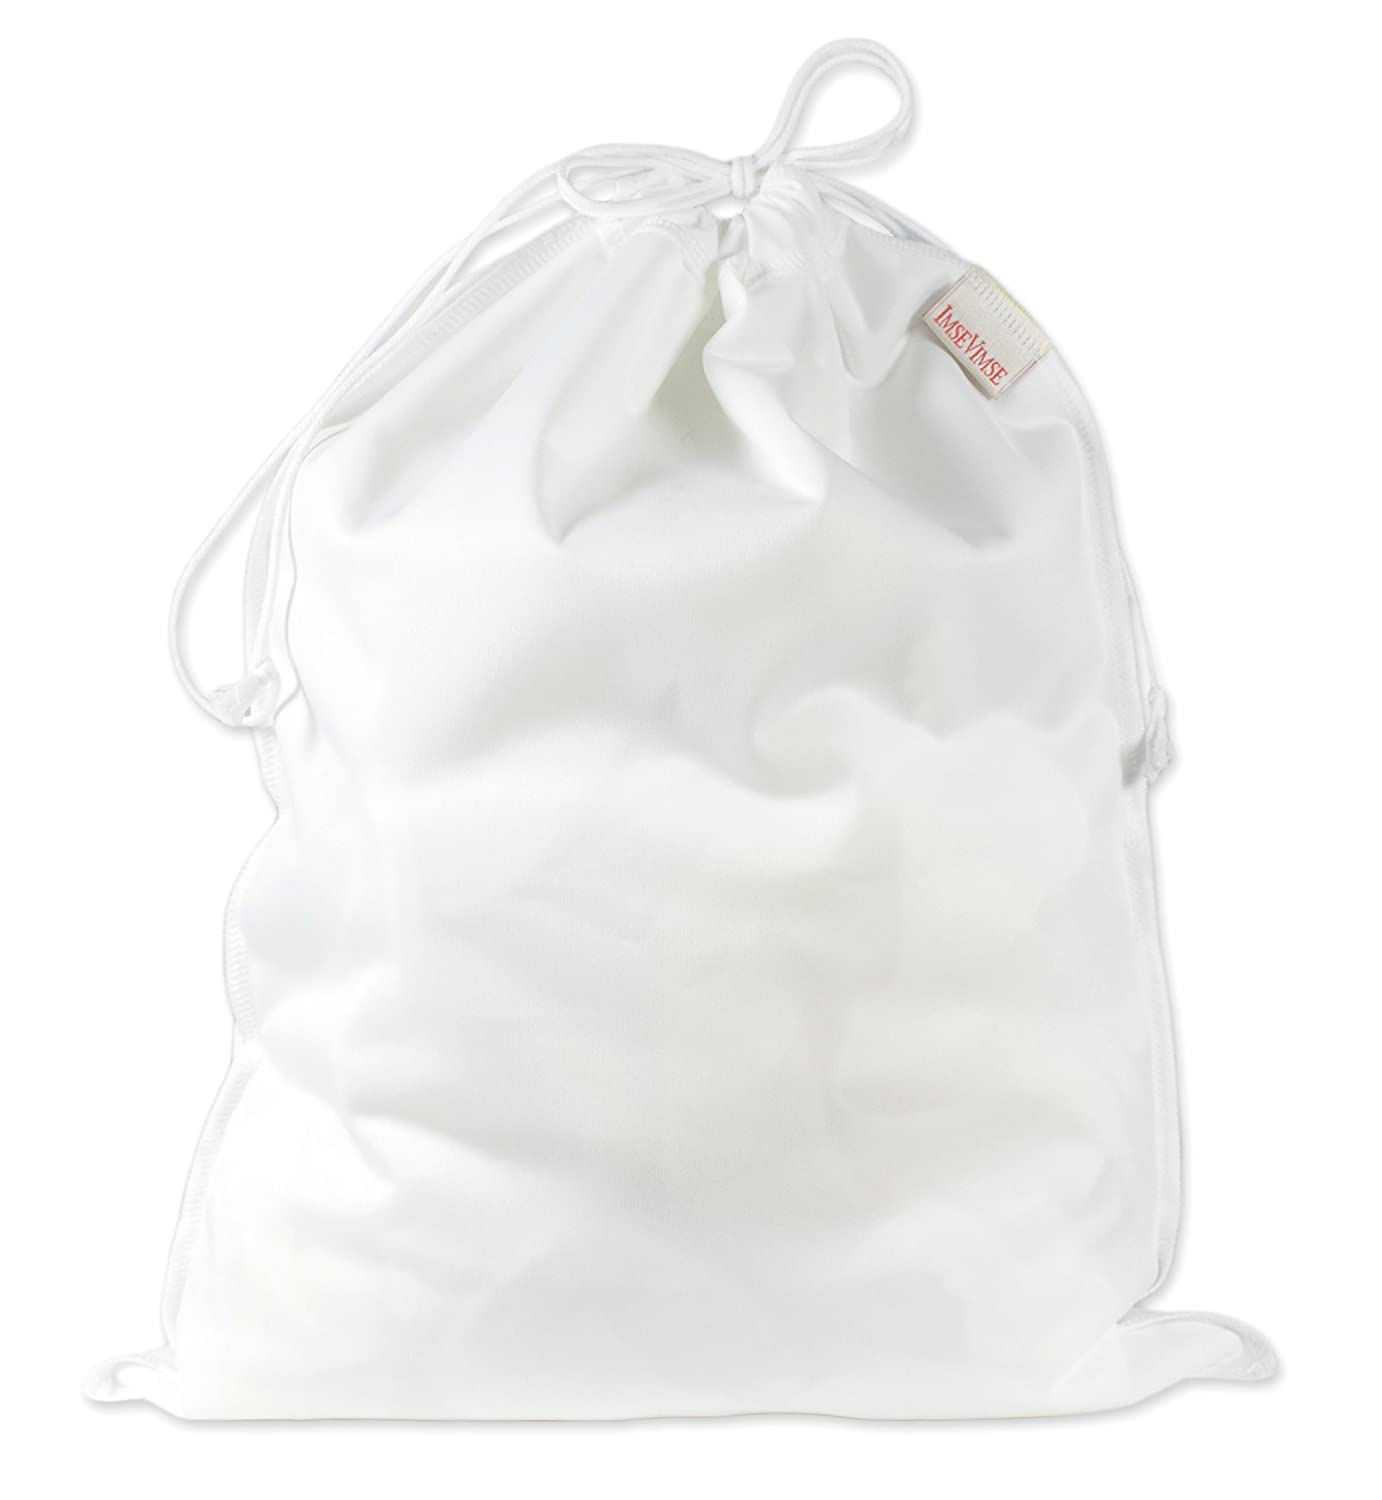 IMSE VIMSE Bolsa Impermeable (blanco) Wet Bag v6010